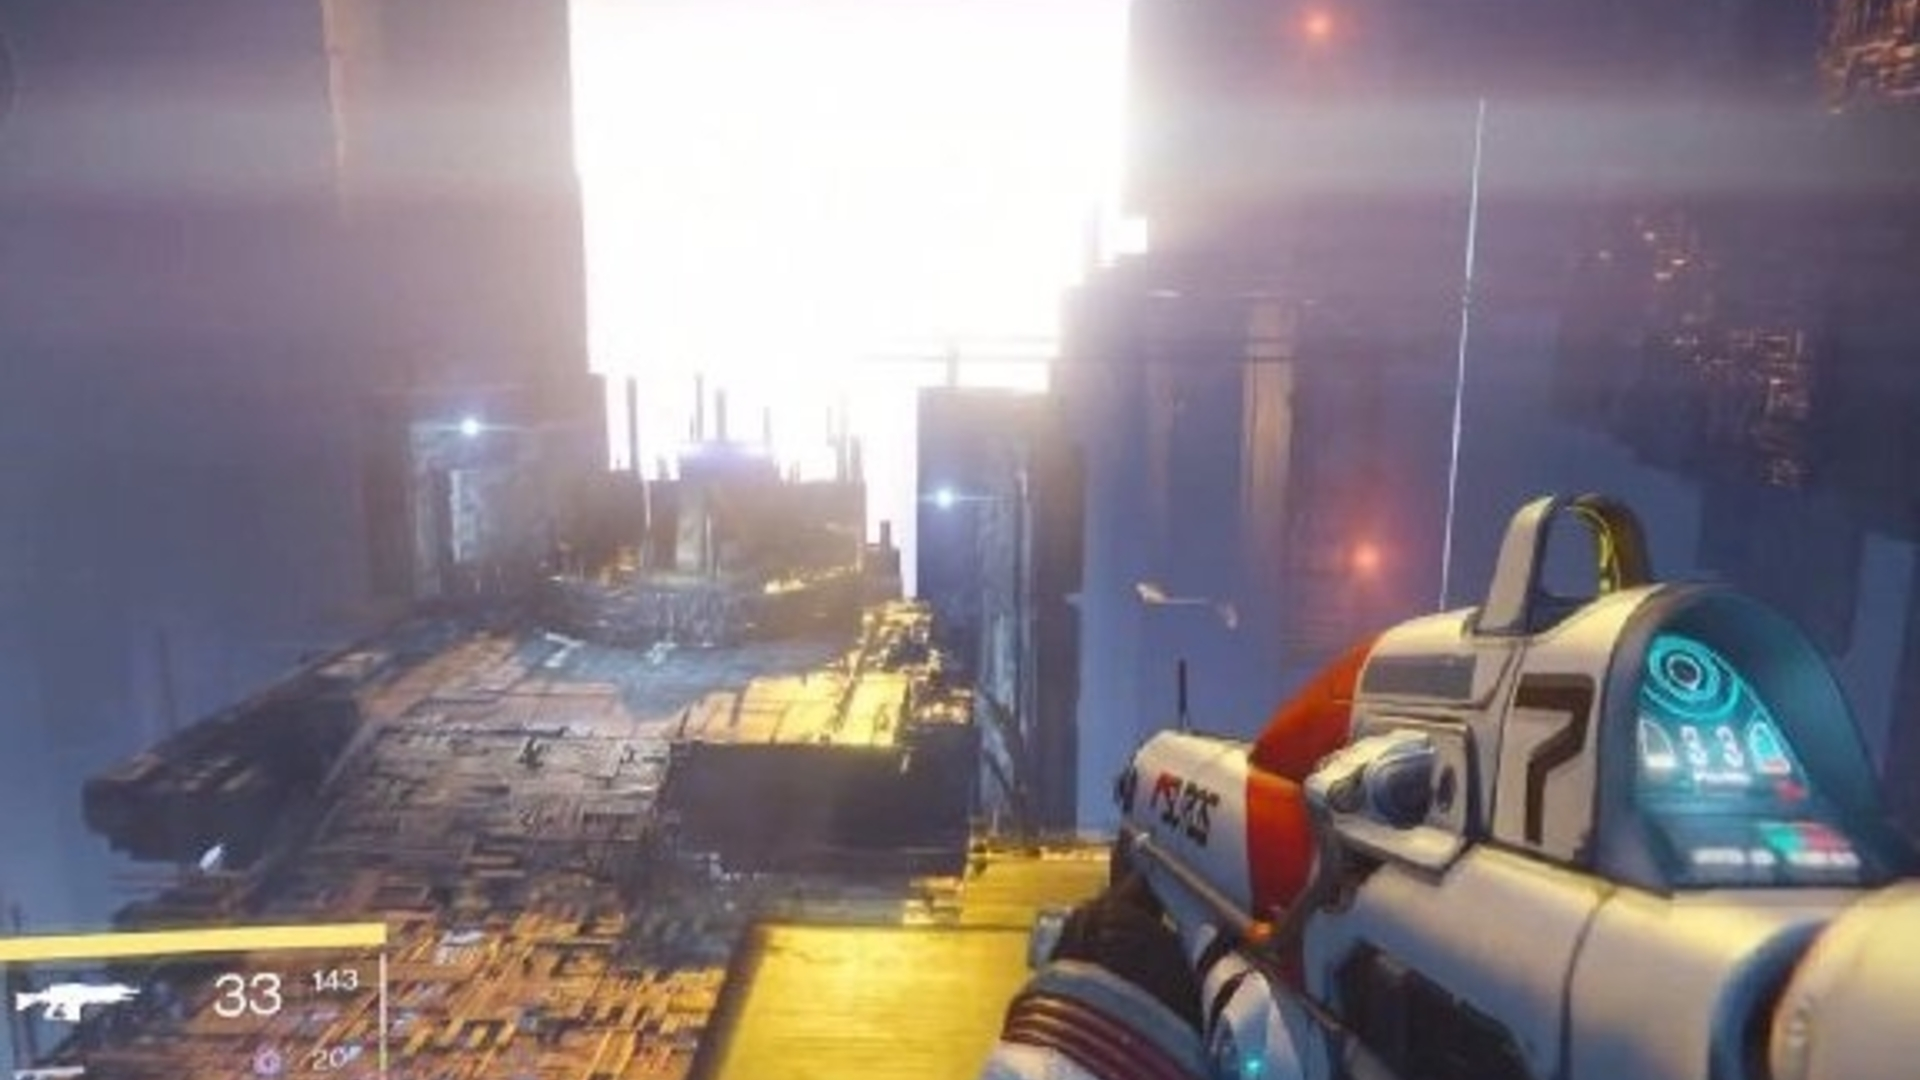 Destiny player finds way to access future DLC area